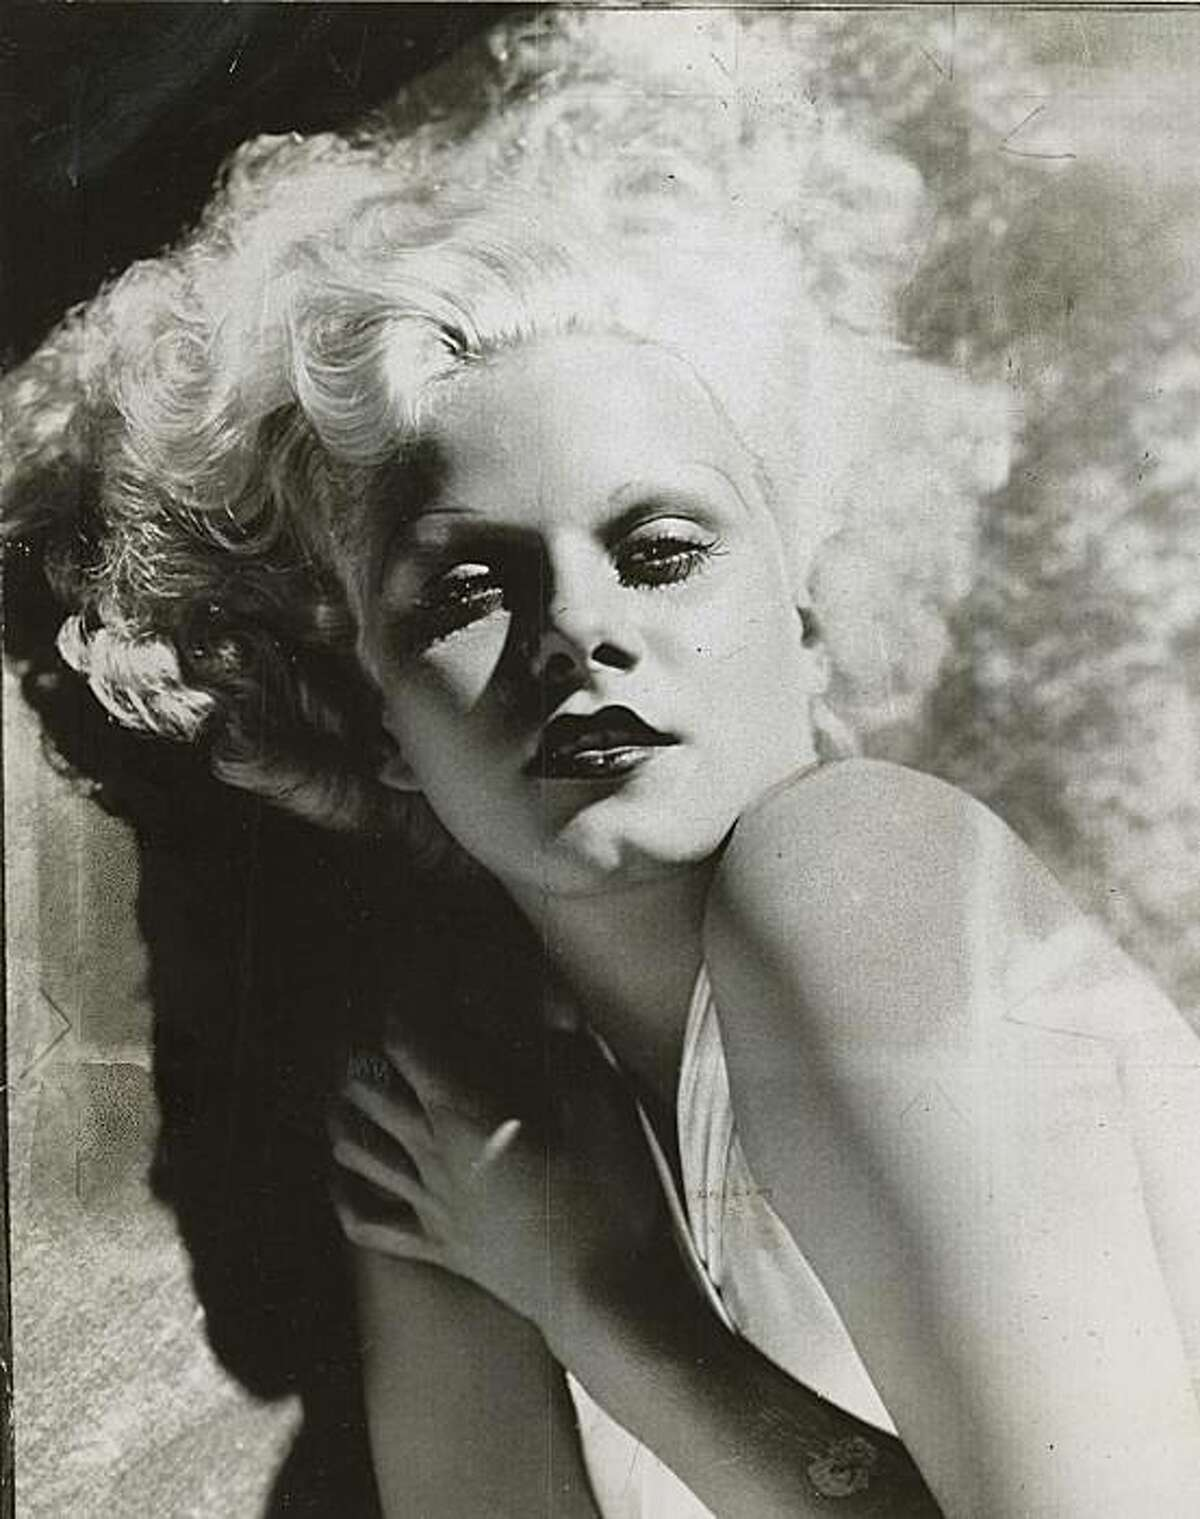 Jean Harlow came to San Francisco in 1932, after her husband's suicide.